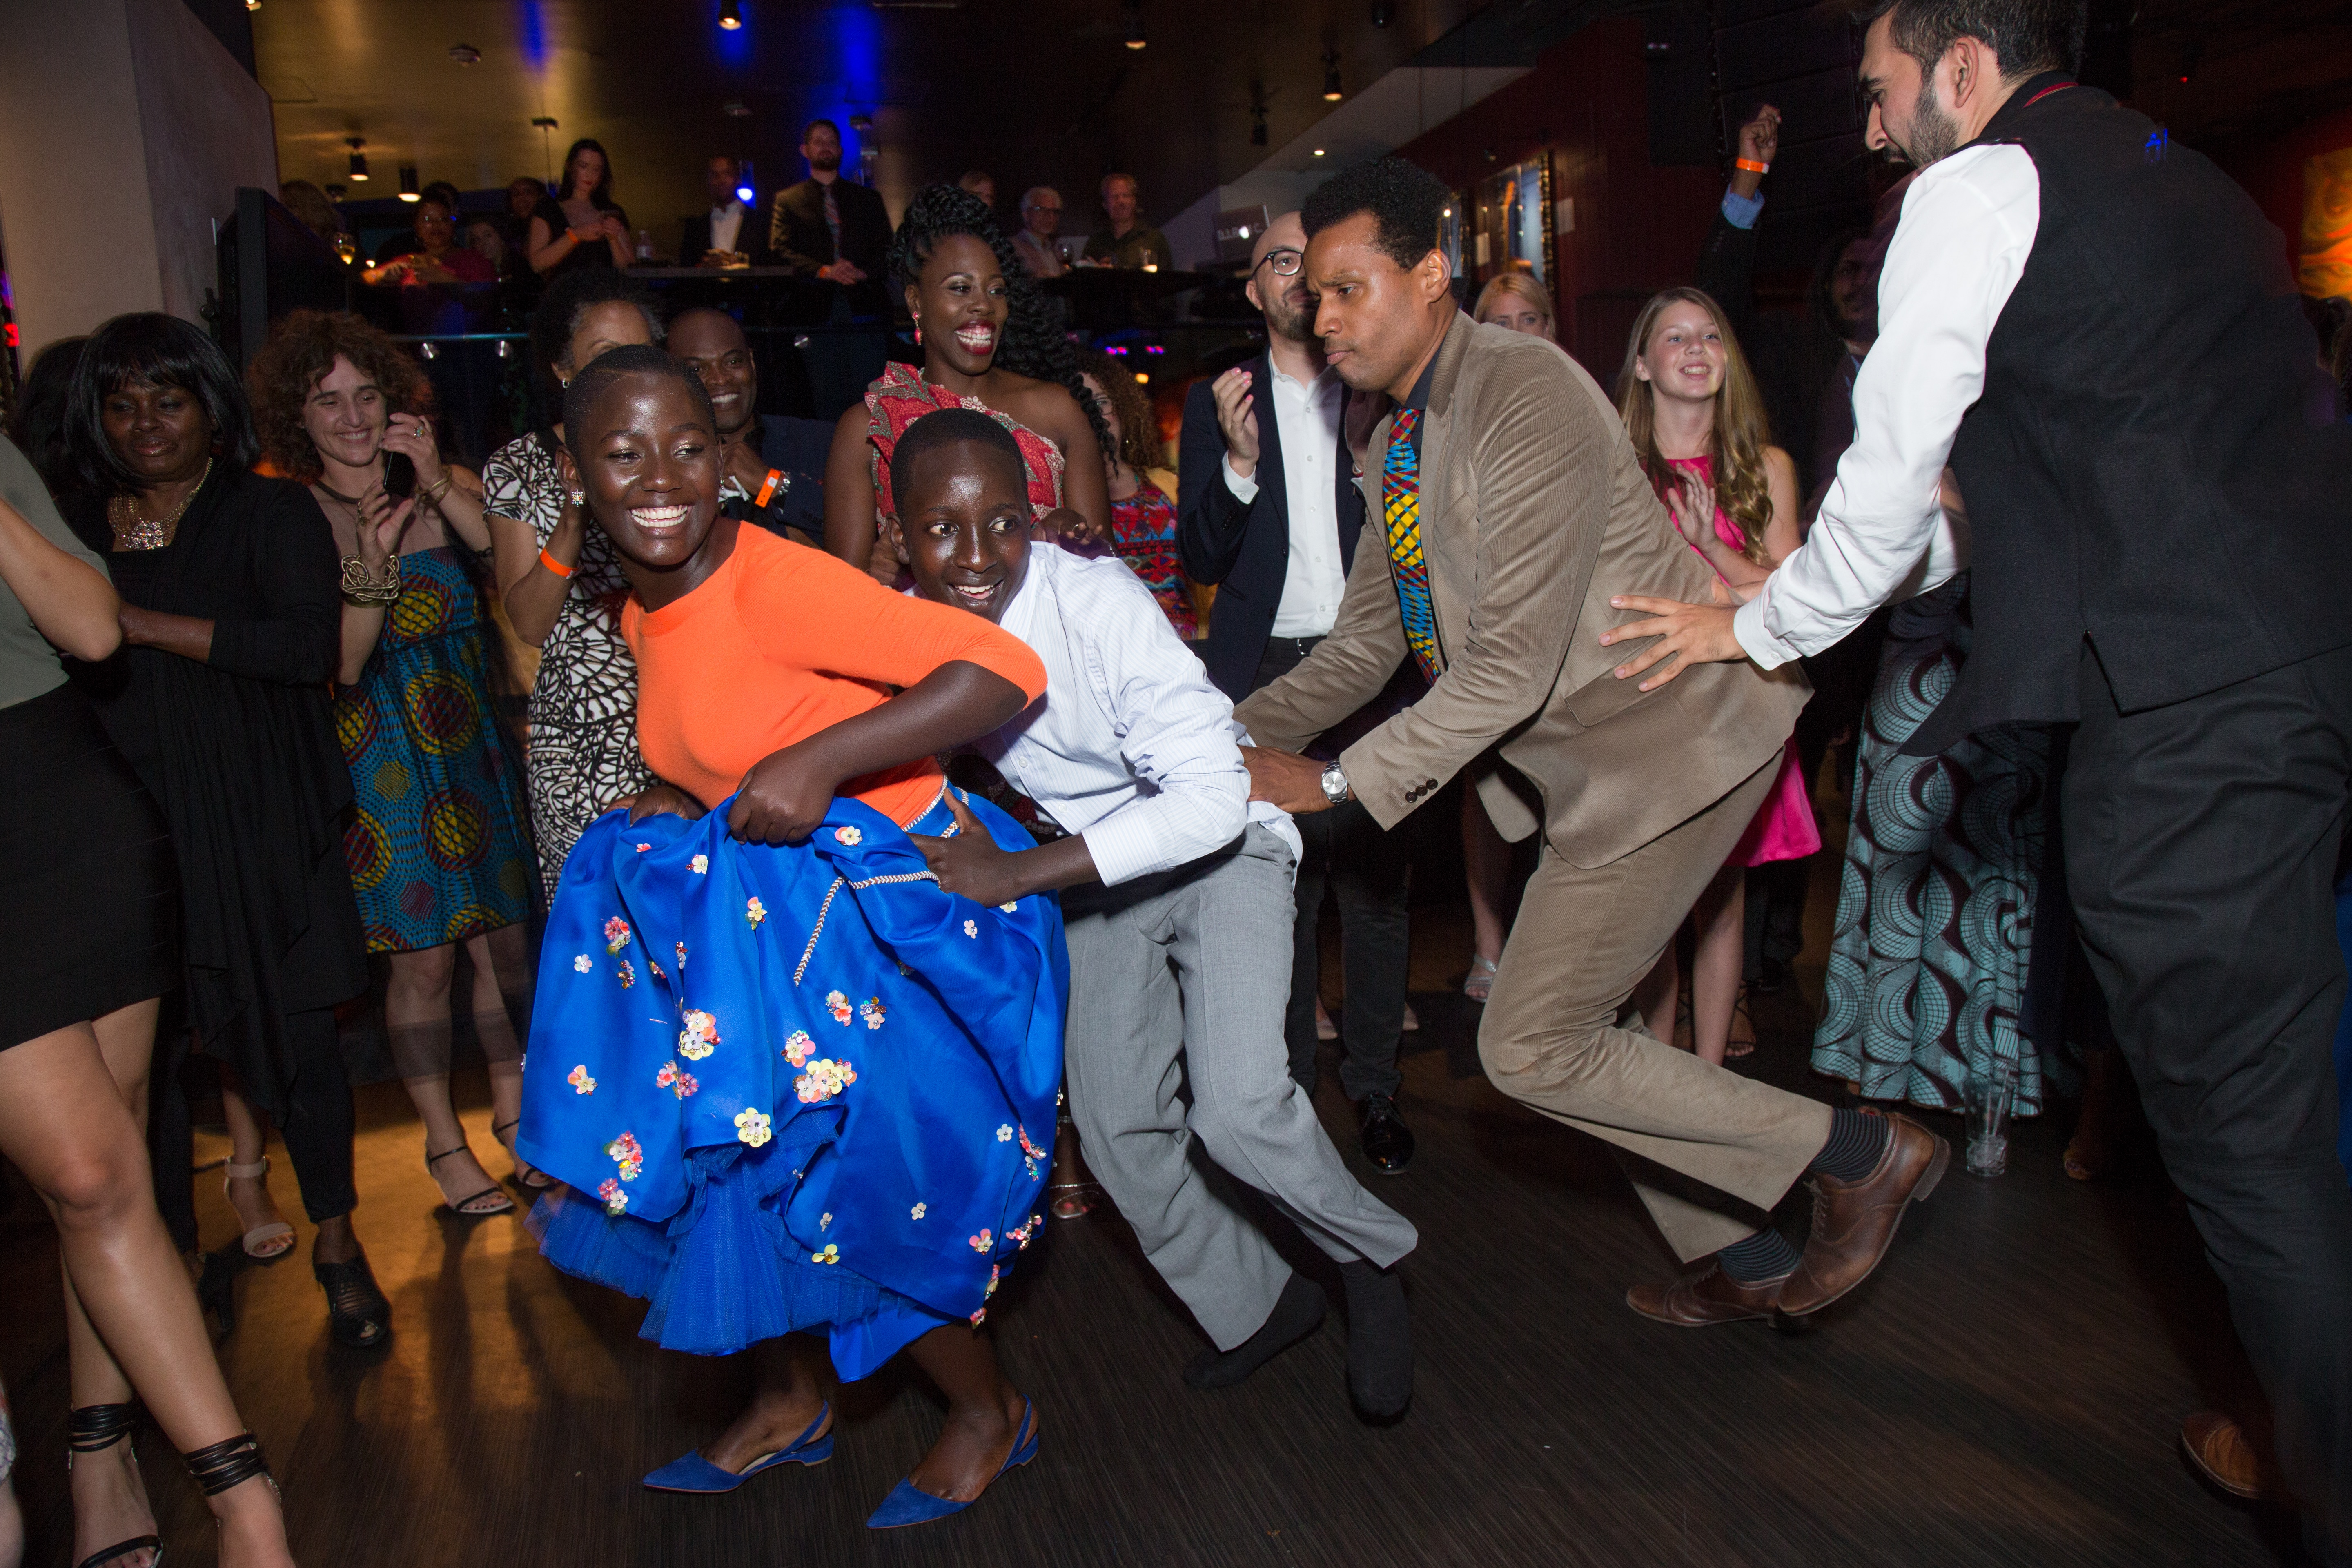 Madina Nalwanga, Robert Katende, Tendo Nagenda dance at Queen of Katwe after party